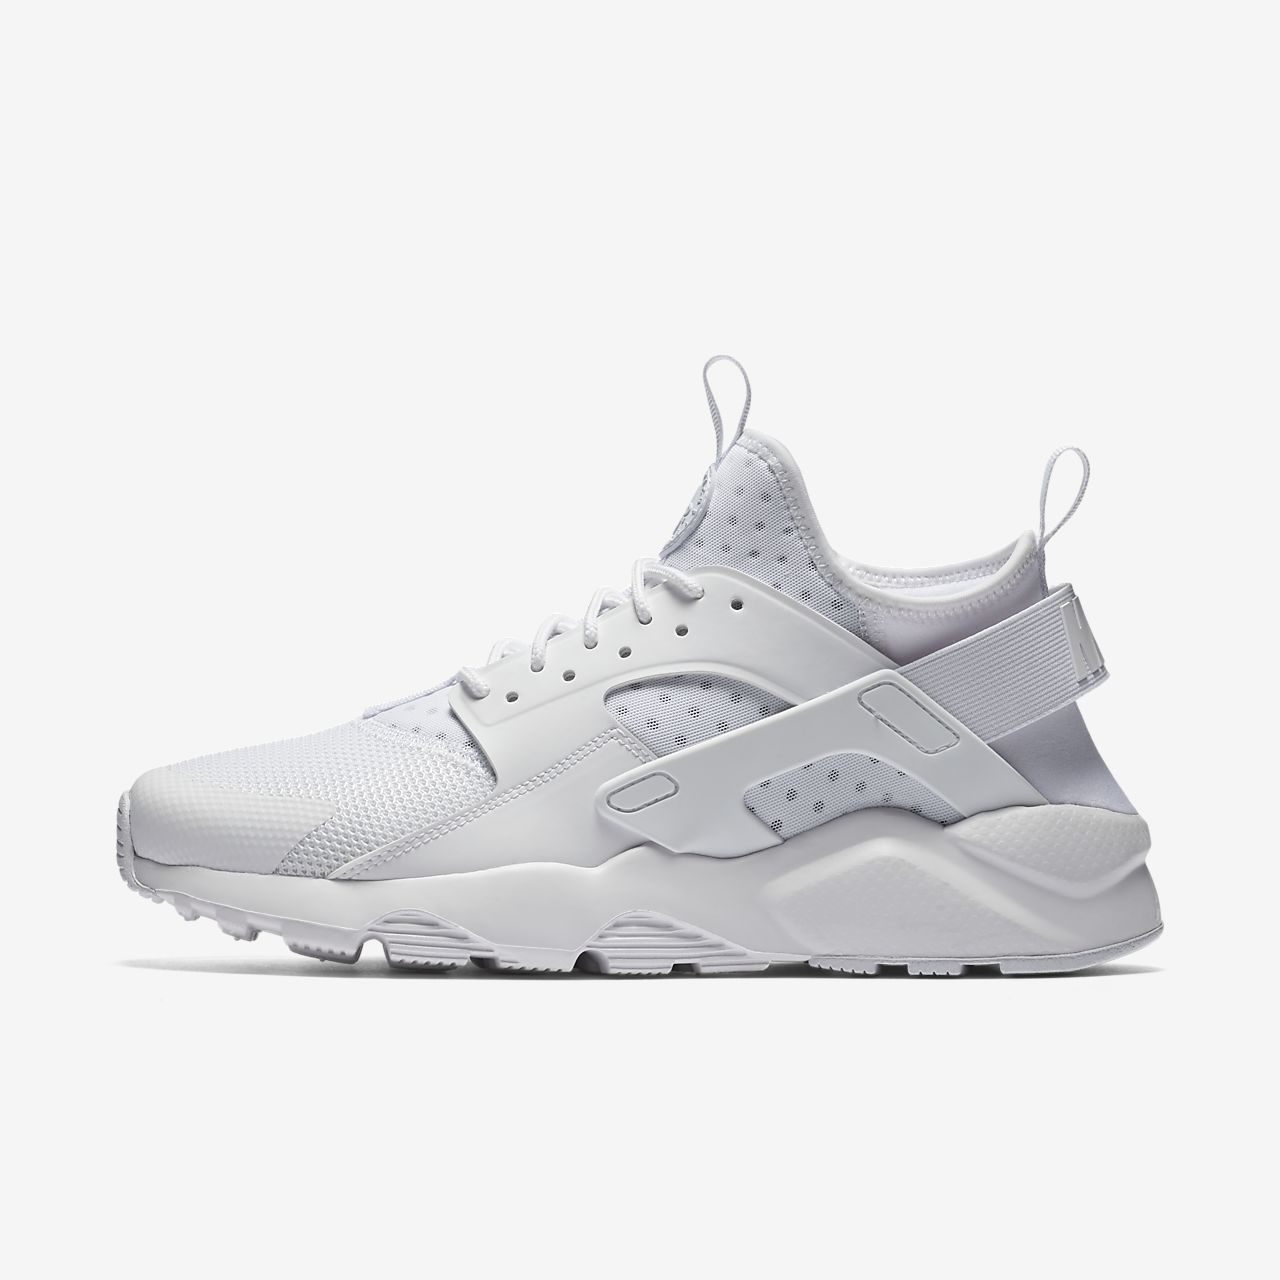 newest 1bb25 568a7 Low Resolution Nike Air Huarache Ultra Men s Shoe Nike Air Huarache Ultra  Men s Shoe